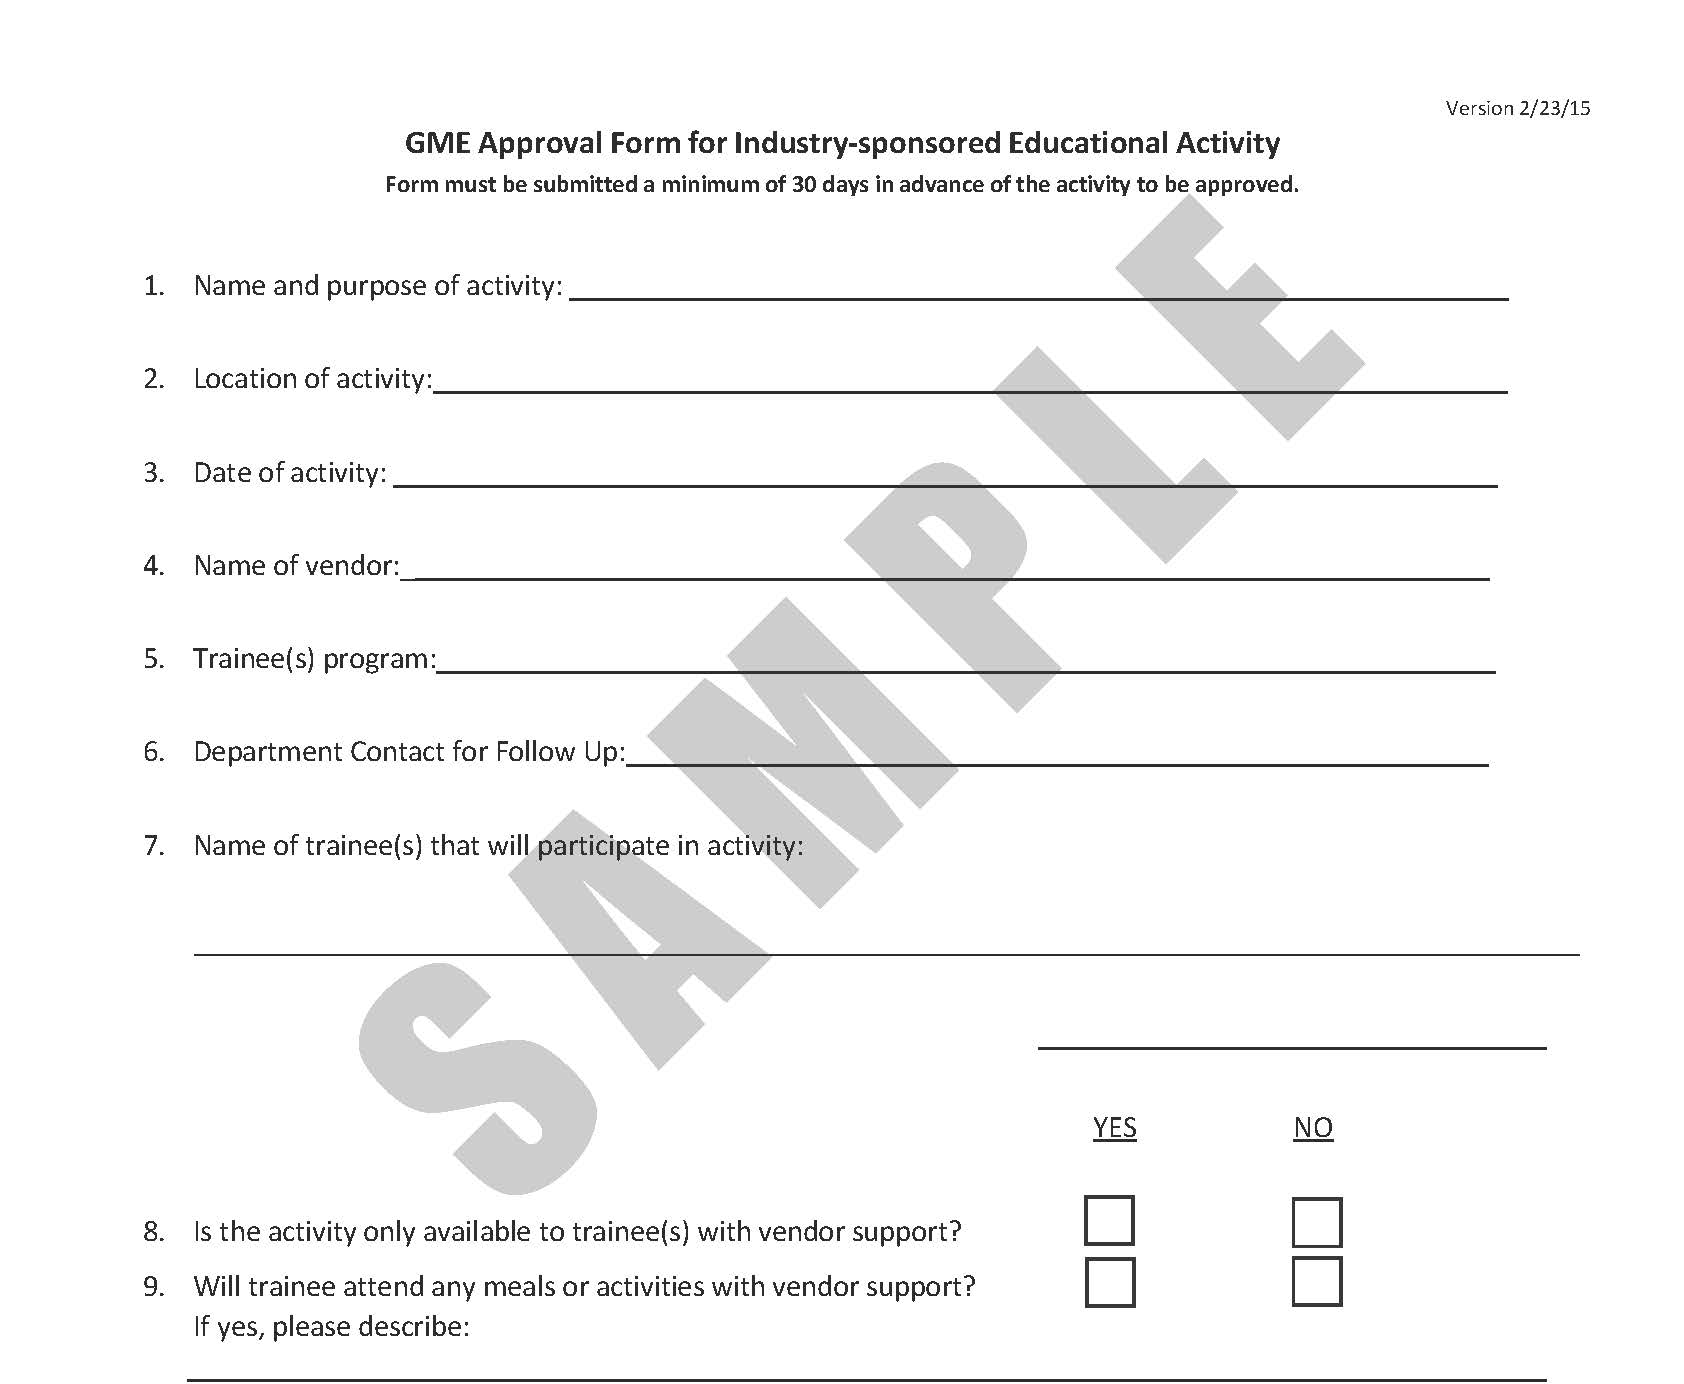 GME Approval Form for Industry-sponsored Educational Activity